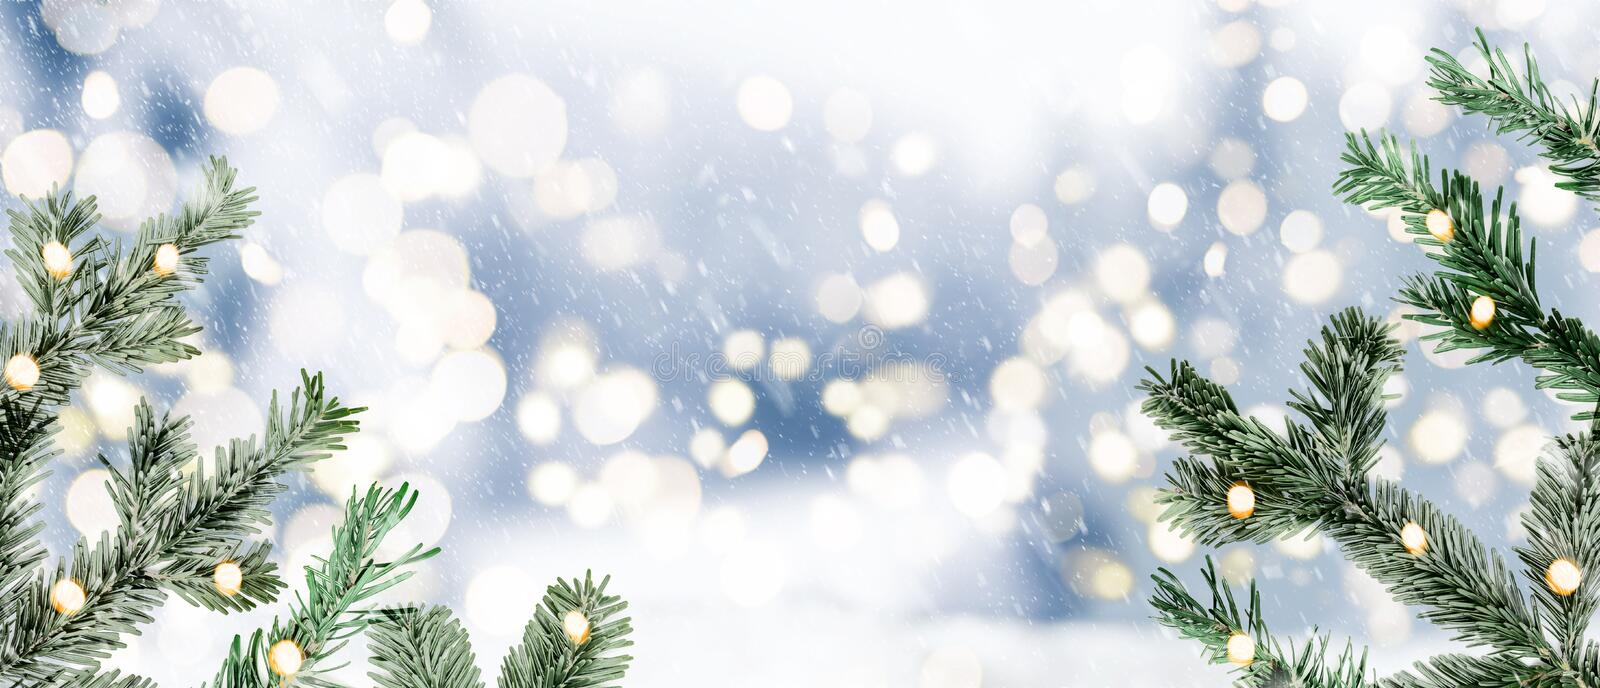 Festive blurry snowy winter background with fir twigs and circular lights royalty free stock photo